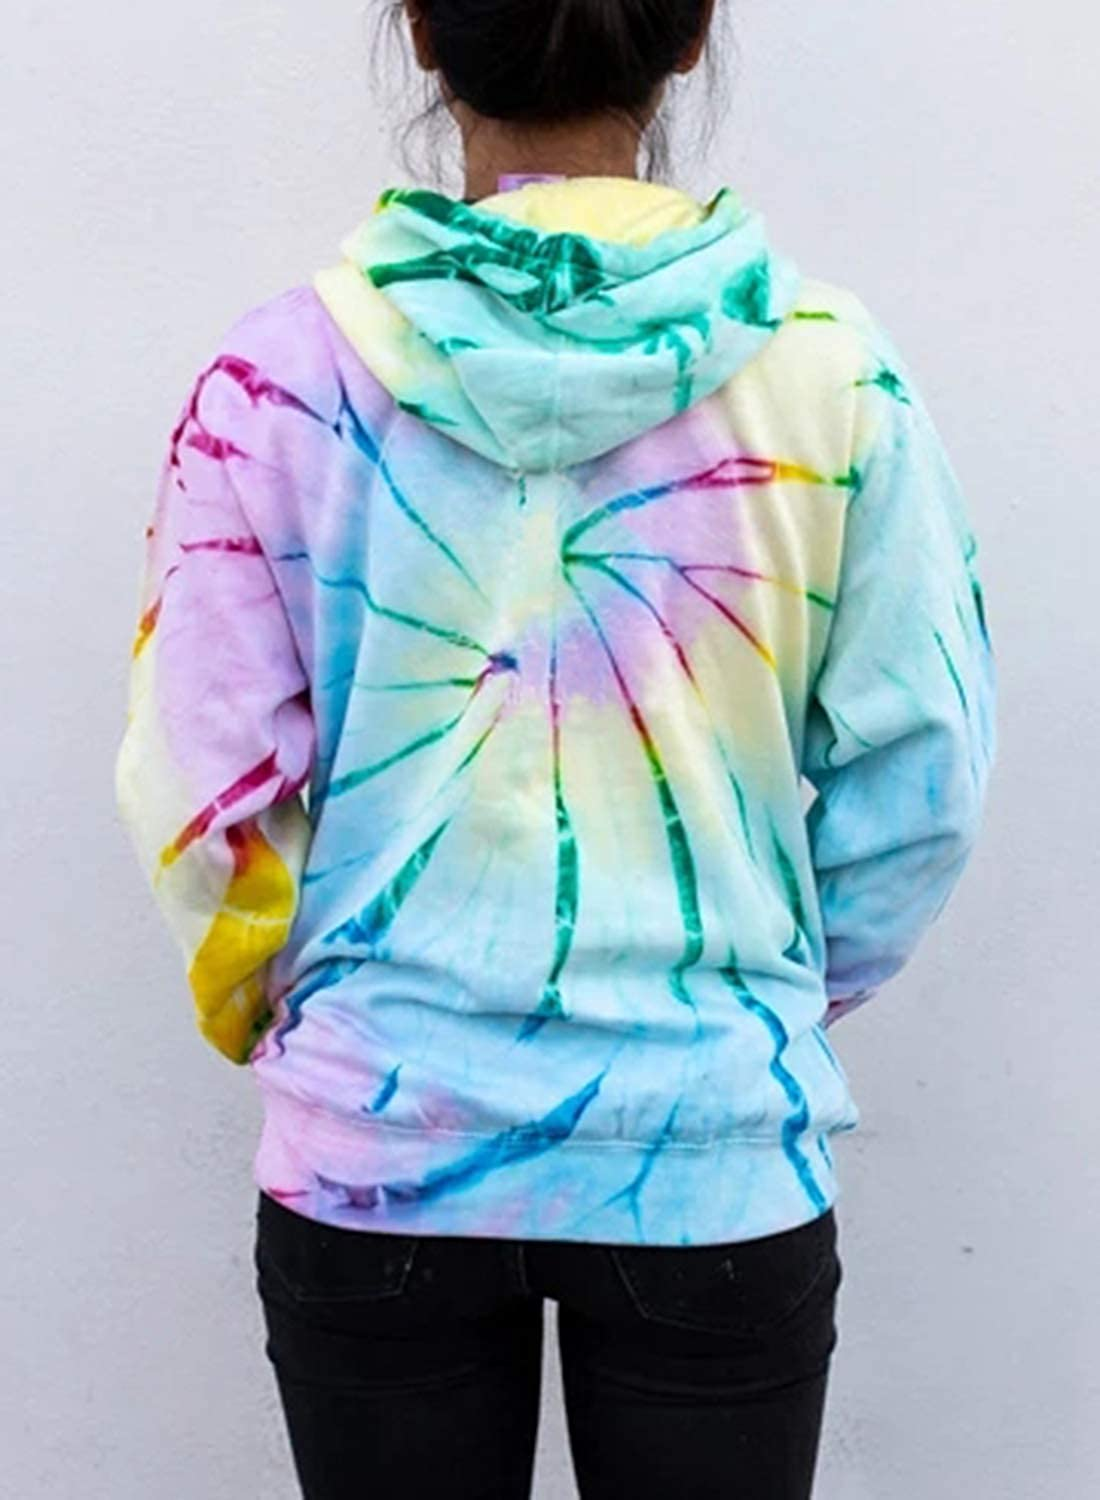 Dearlovers Women Long Sleeve Tops Tie Dye Hoodie Sweatshirt Loose Tunic Shirts with Pocket